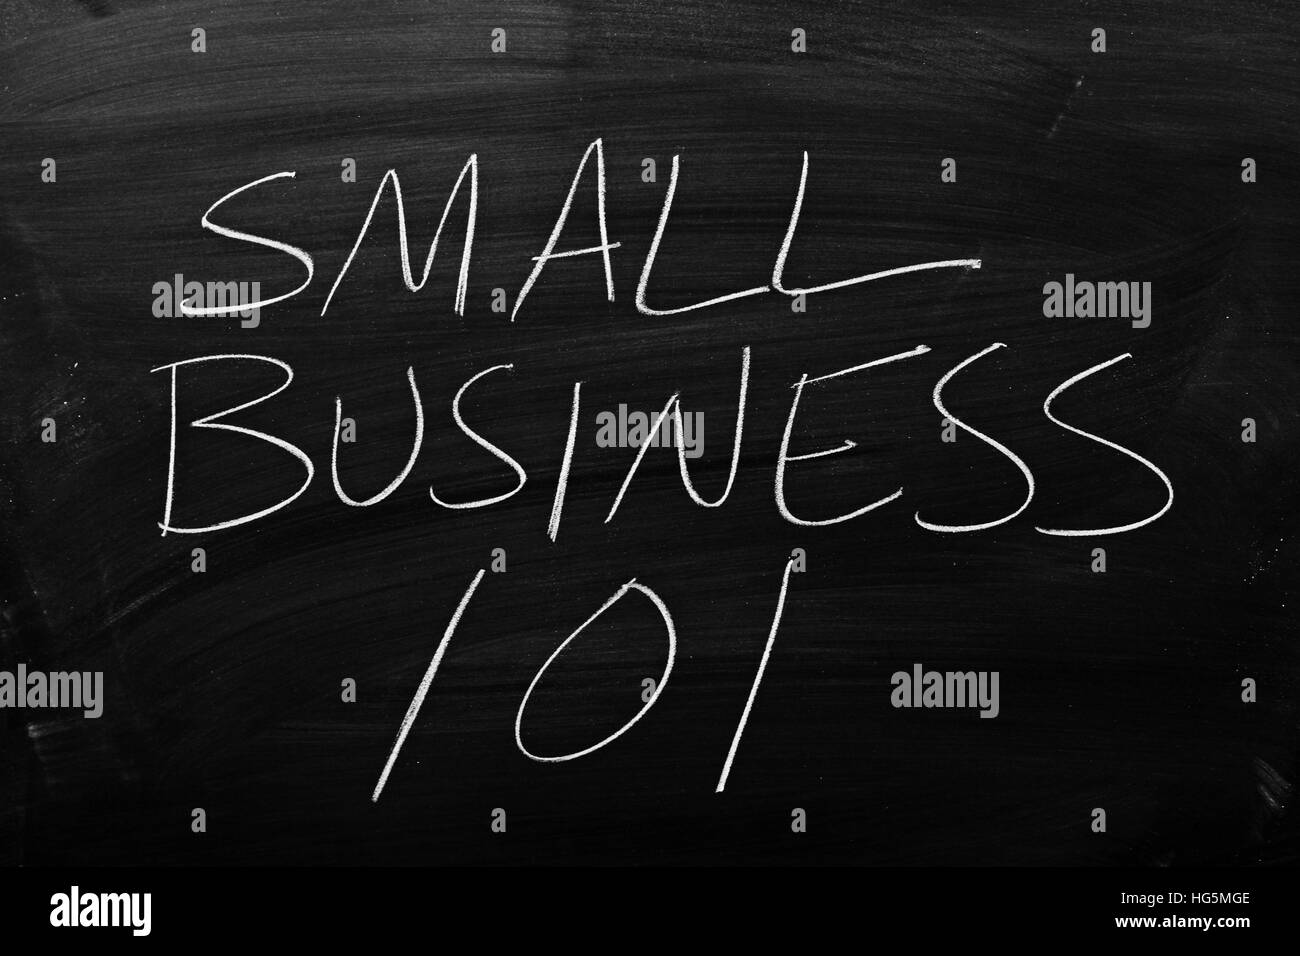 The words 'Small Business 101' on a blackboard in chalk - Stock Image